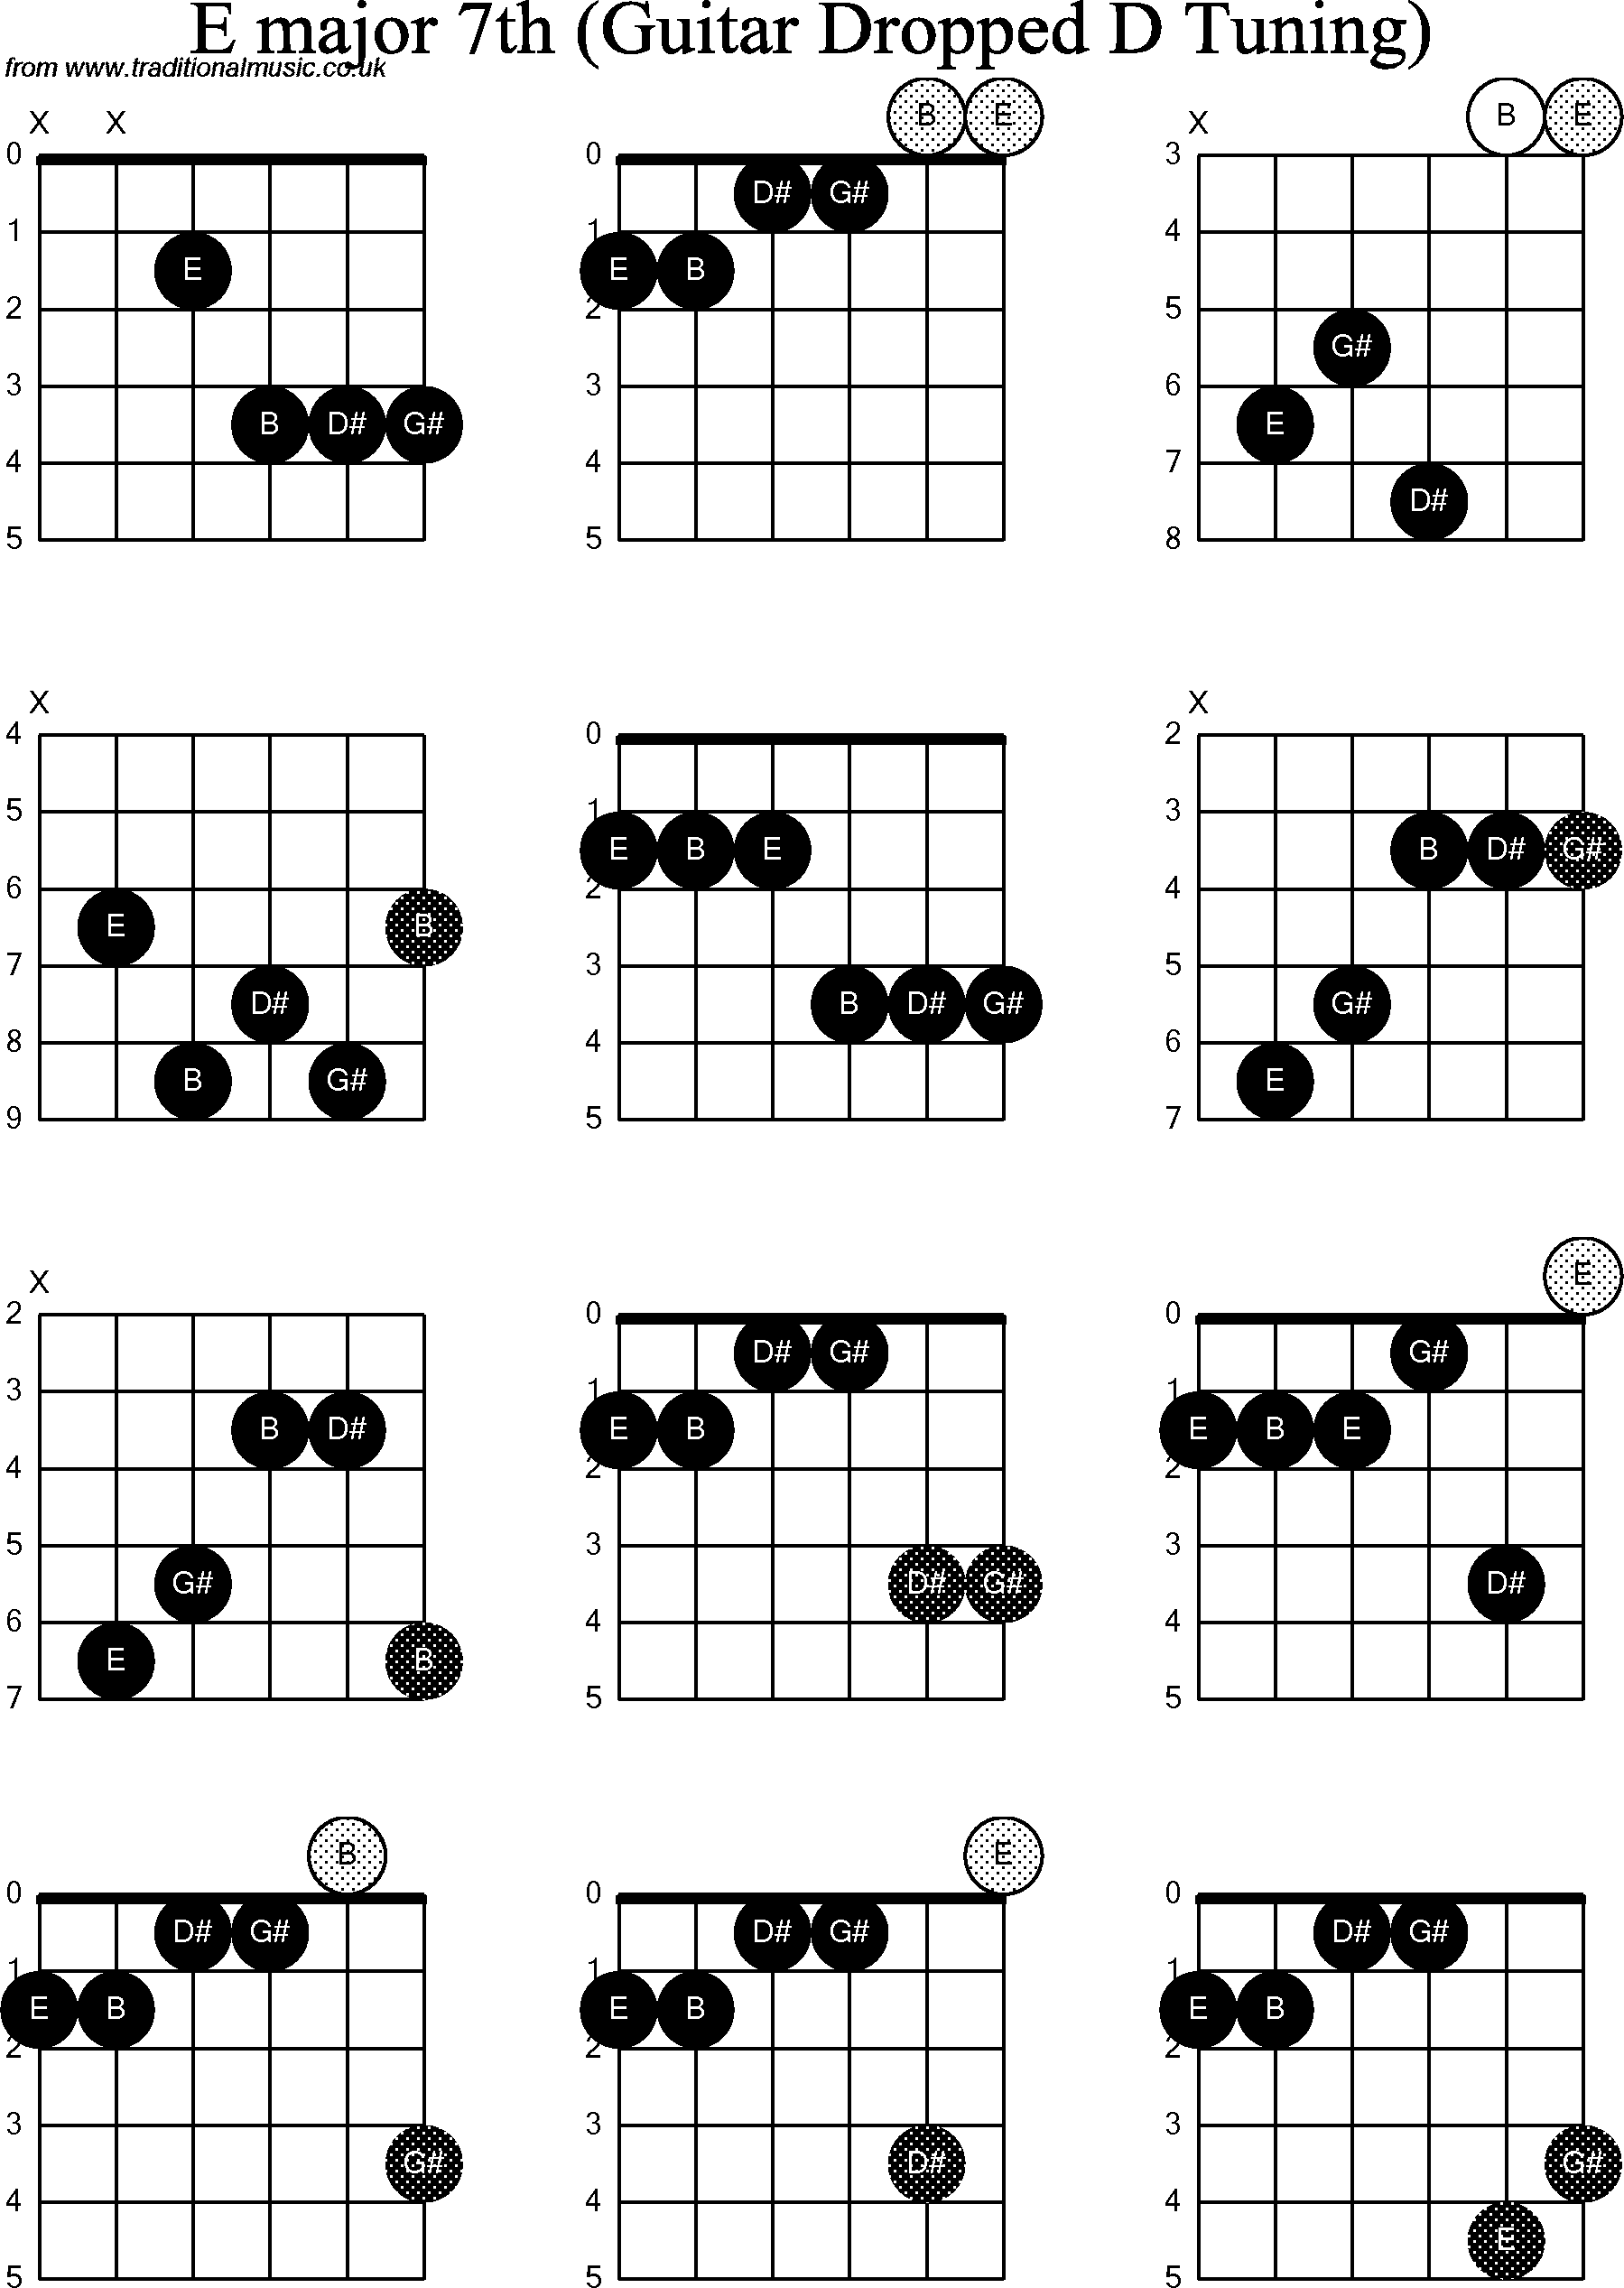 Chord Diagrams For Dropped D Guitardadgbe E Major7th